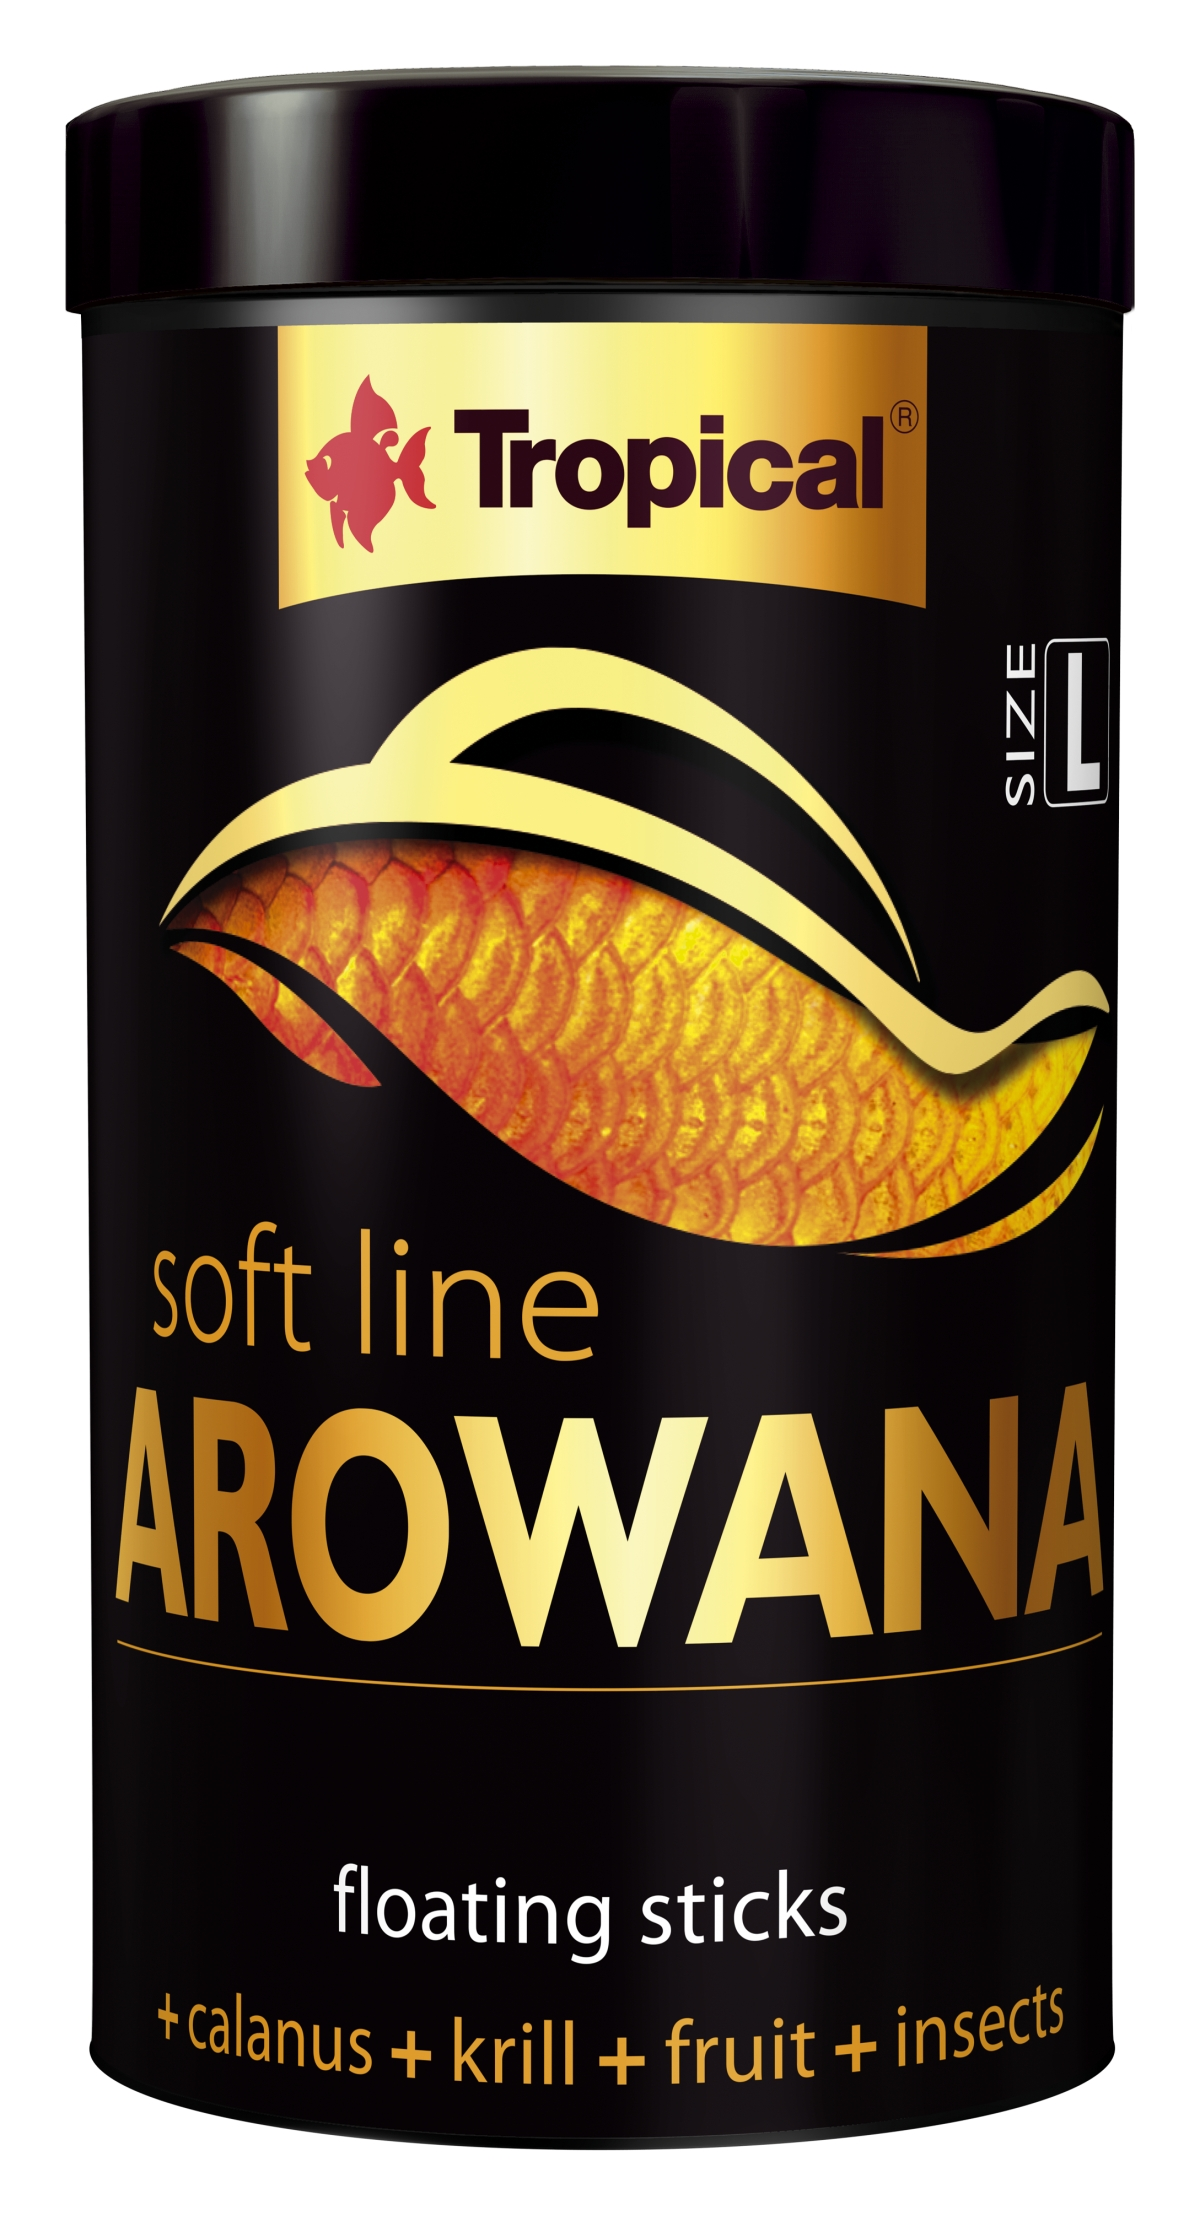 Tropical Soft Line Arowana L - 100ml/32g